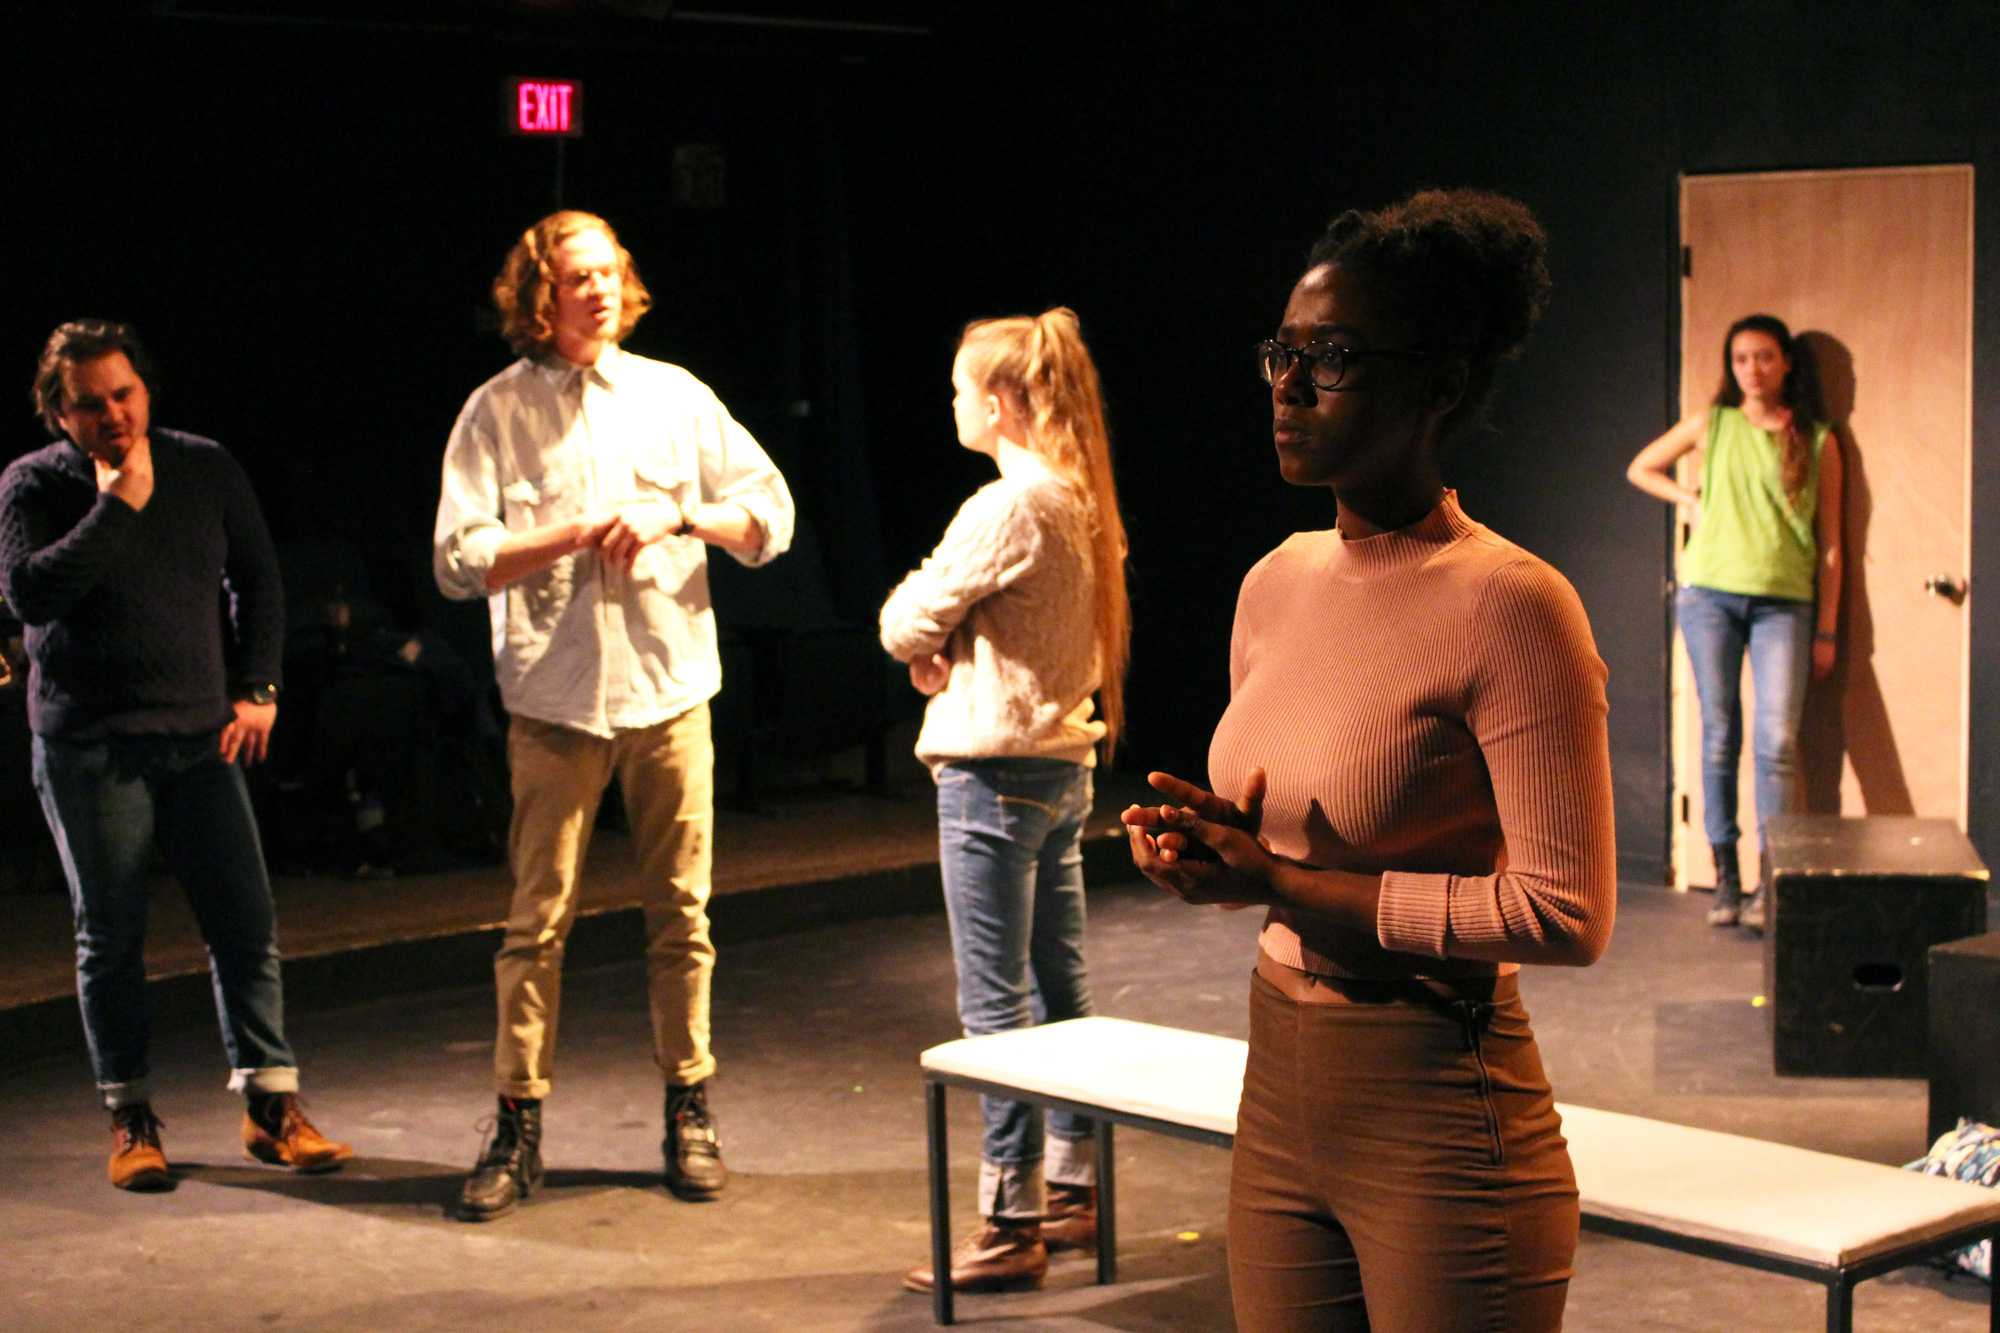 %22Phyllis+Kugler%2C+Eat+Your+Heart+Out%22+cast+rehearsing.+Opening+night+for+the+production+is+Thursday%2C+February+9th.